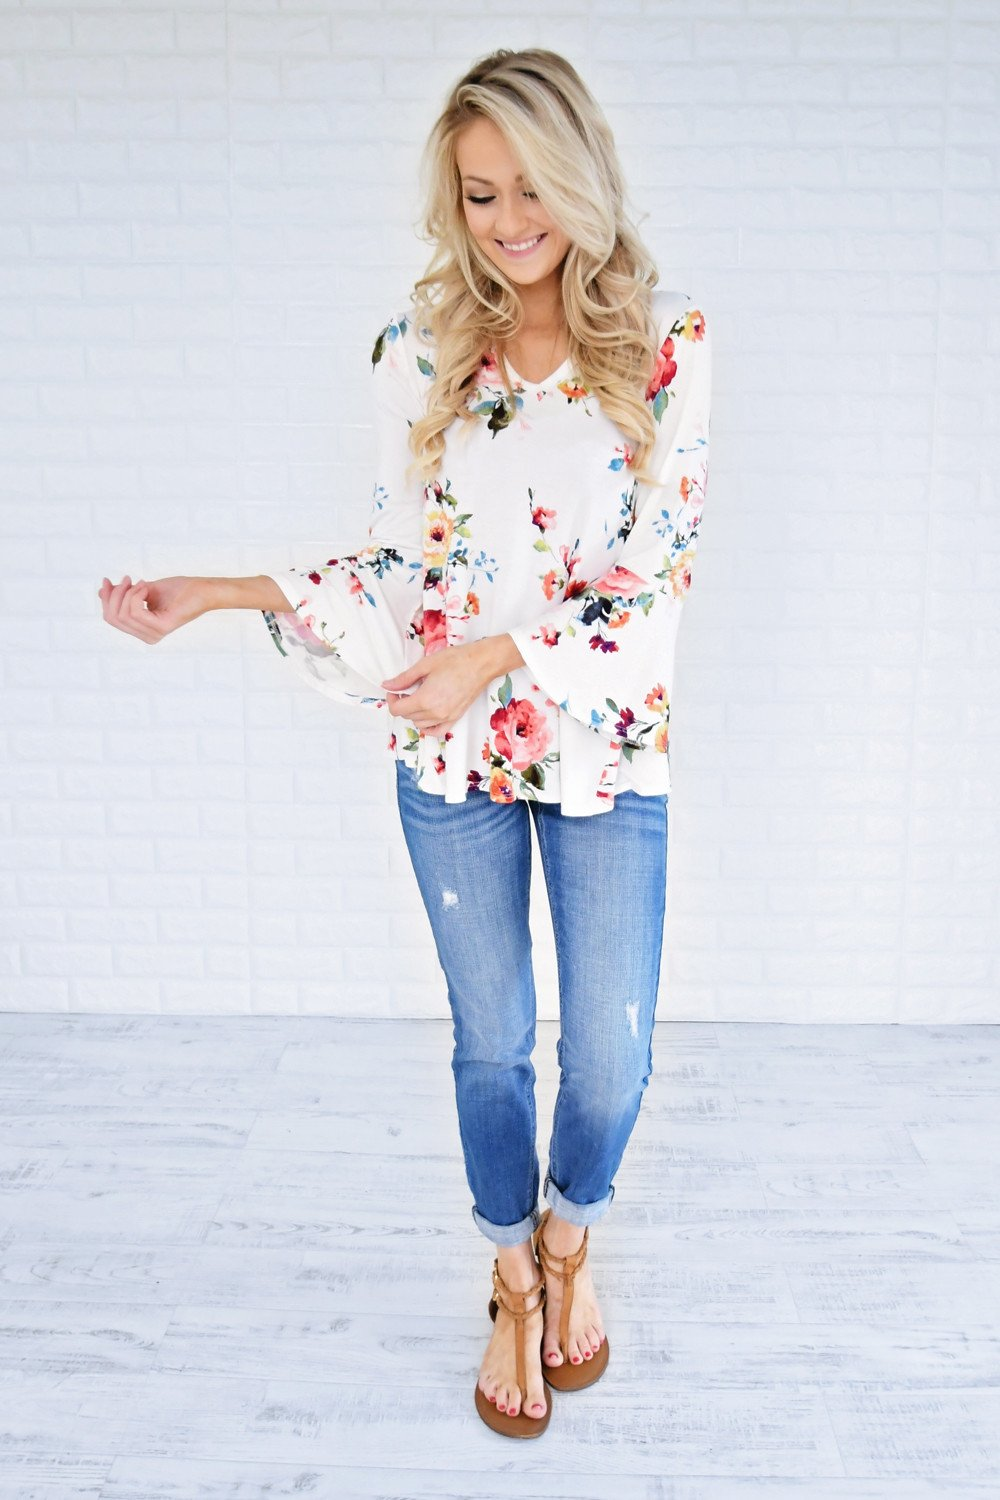 Southern Belle Floral Top